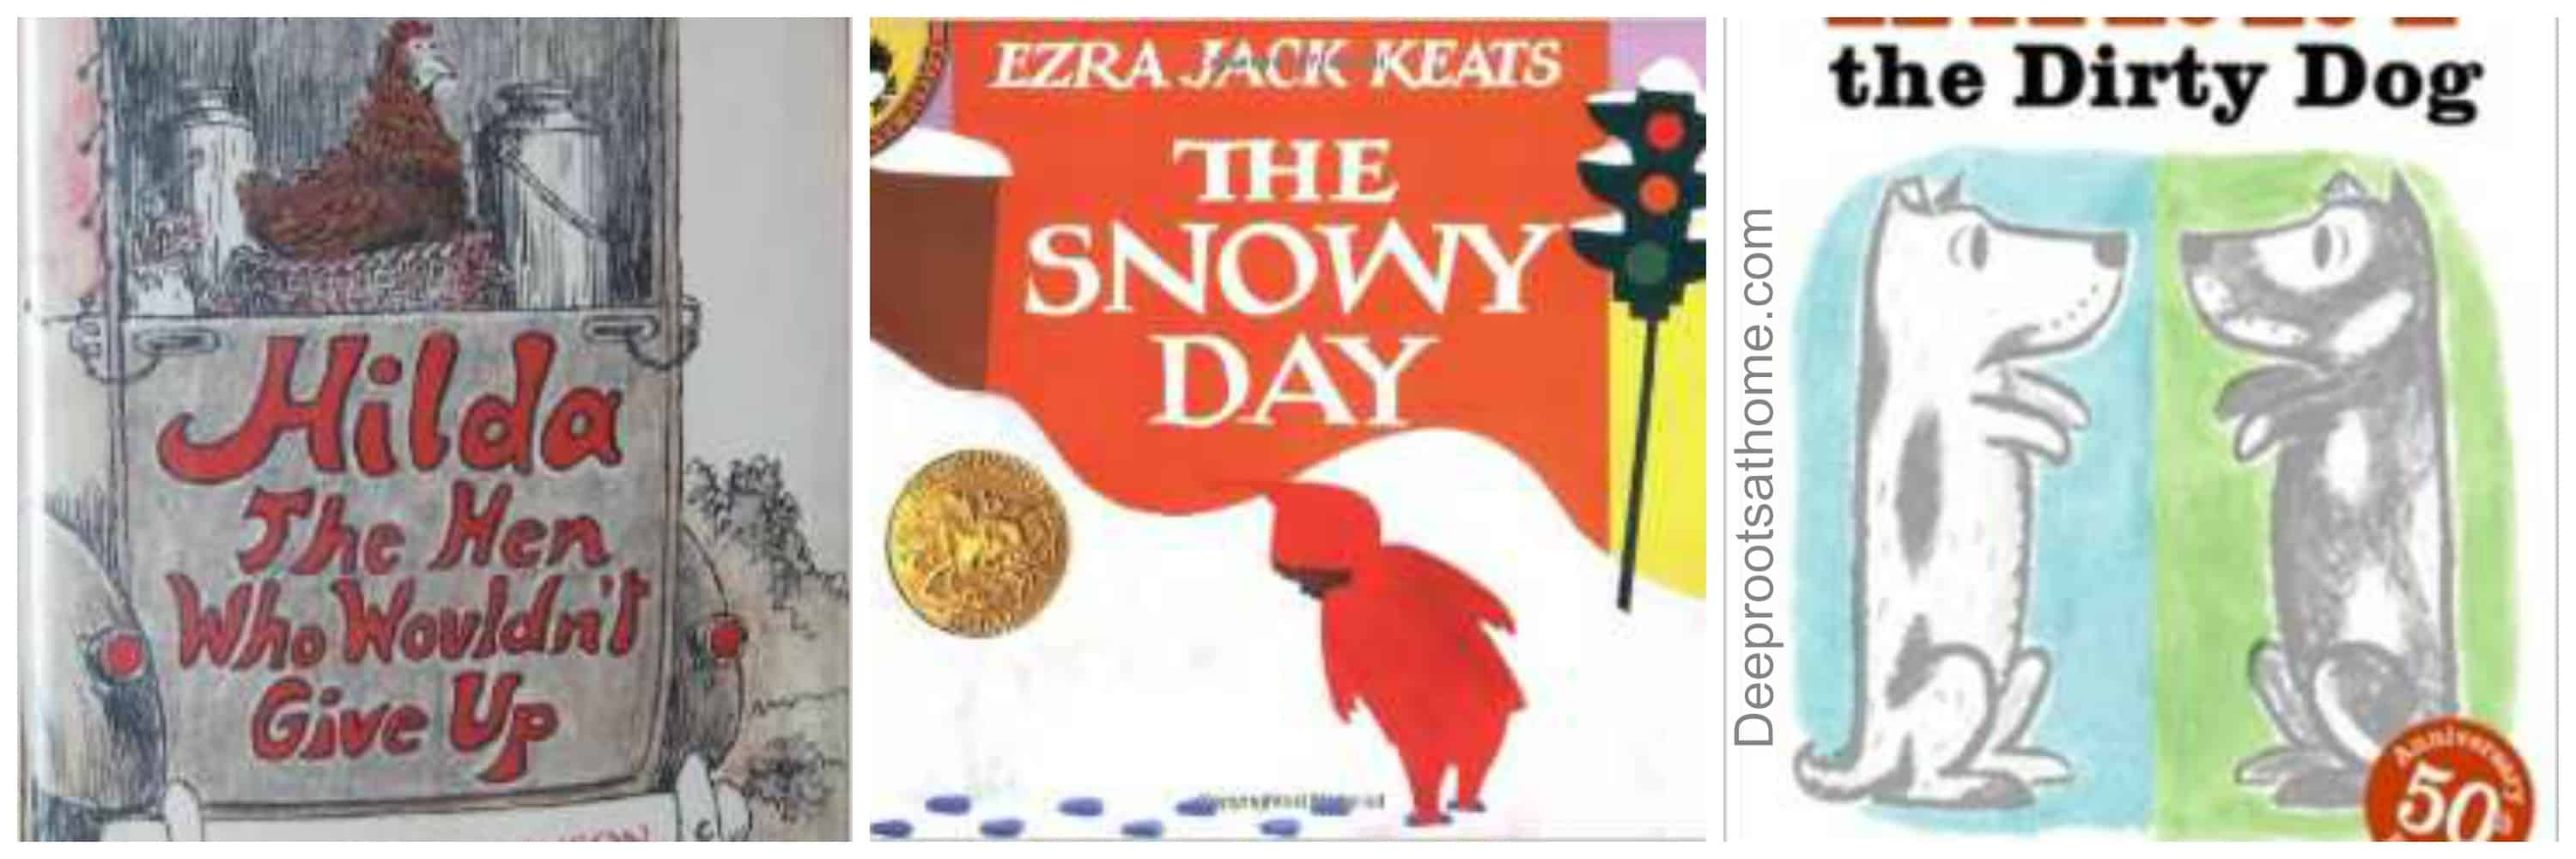 25 Beloved, Time-Tested Read Alouds For Young Children. 3 books: Hilda the Hen Who wouldn't give Up, The Snowy Day by Ezra Jack Keats, and Harry the Dirty Dog.